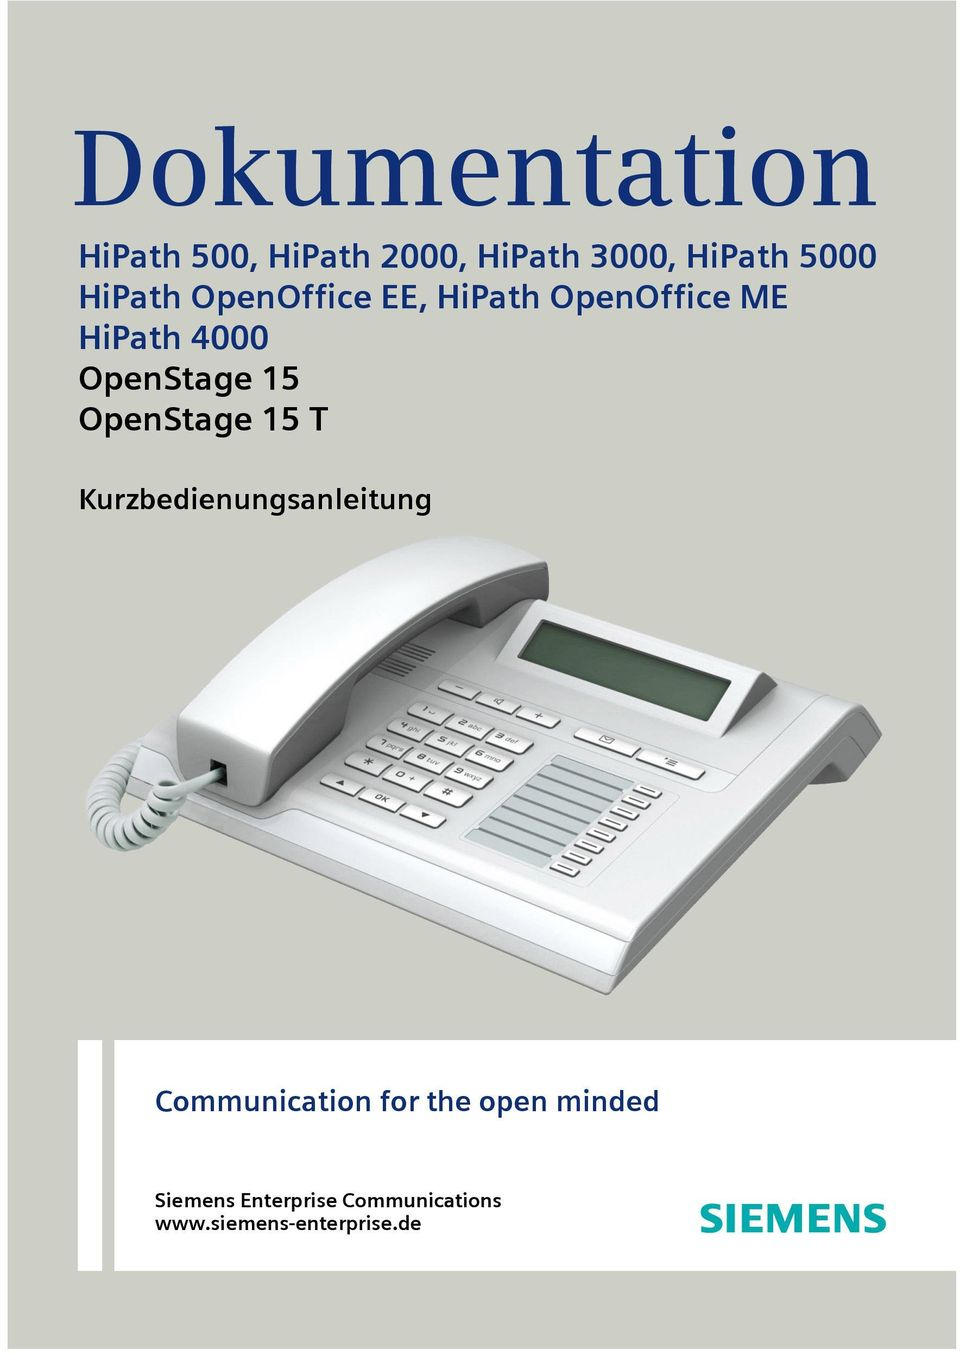 15 OpenStage 15 T Kurzbedienungsanleitung Communication for the